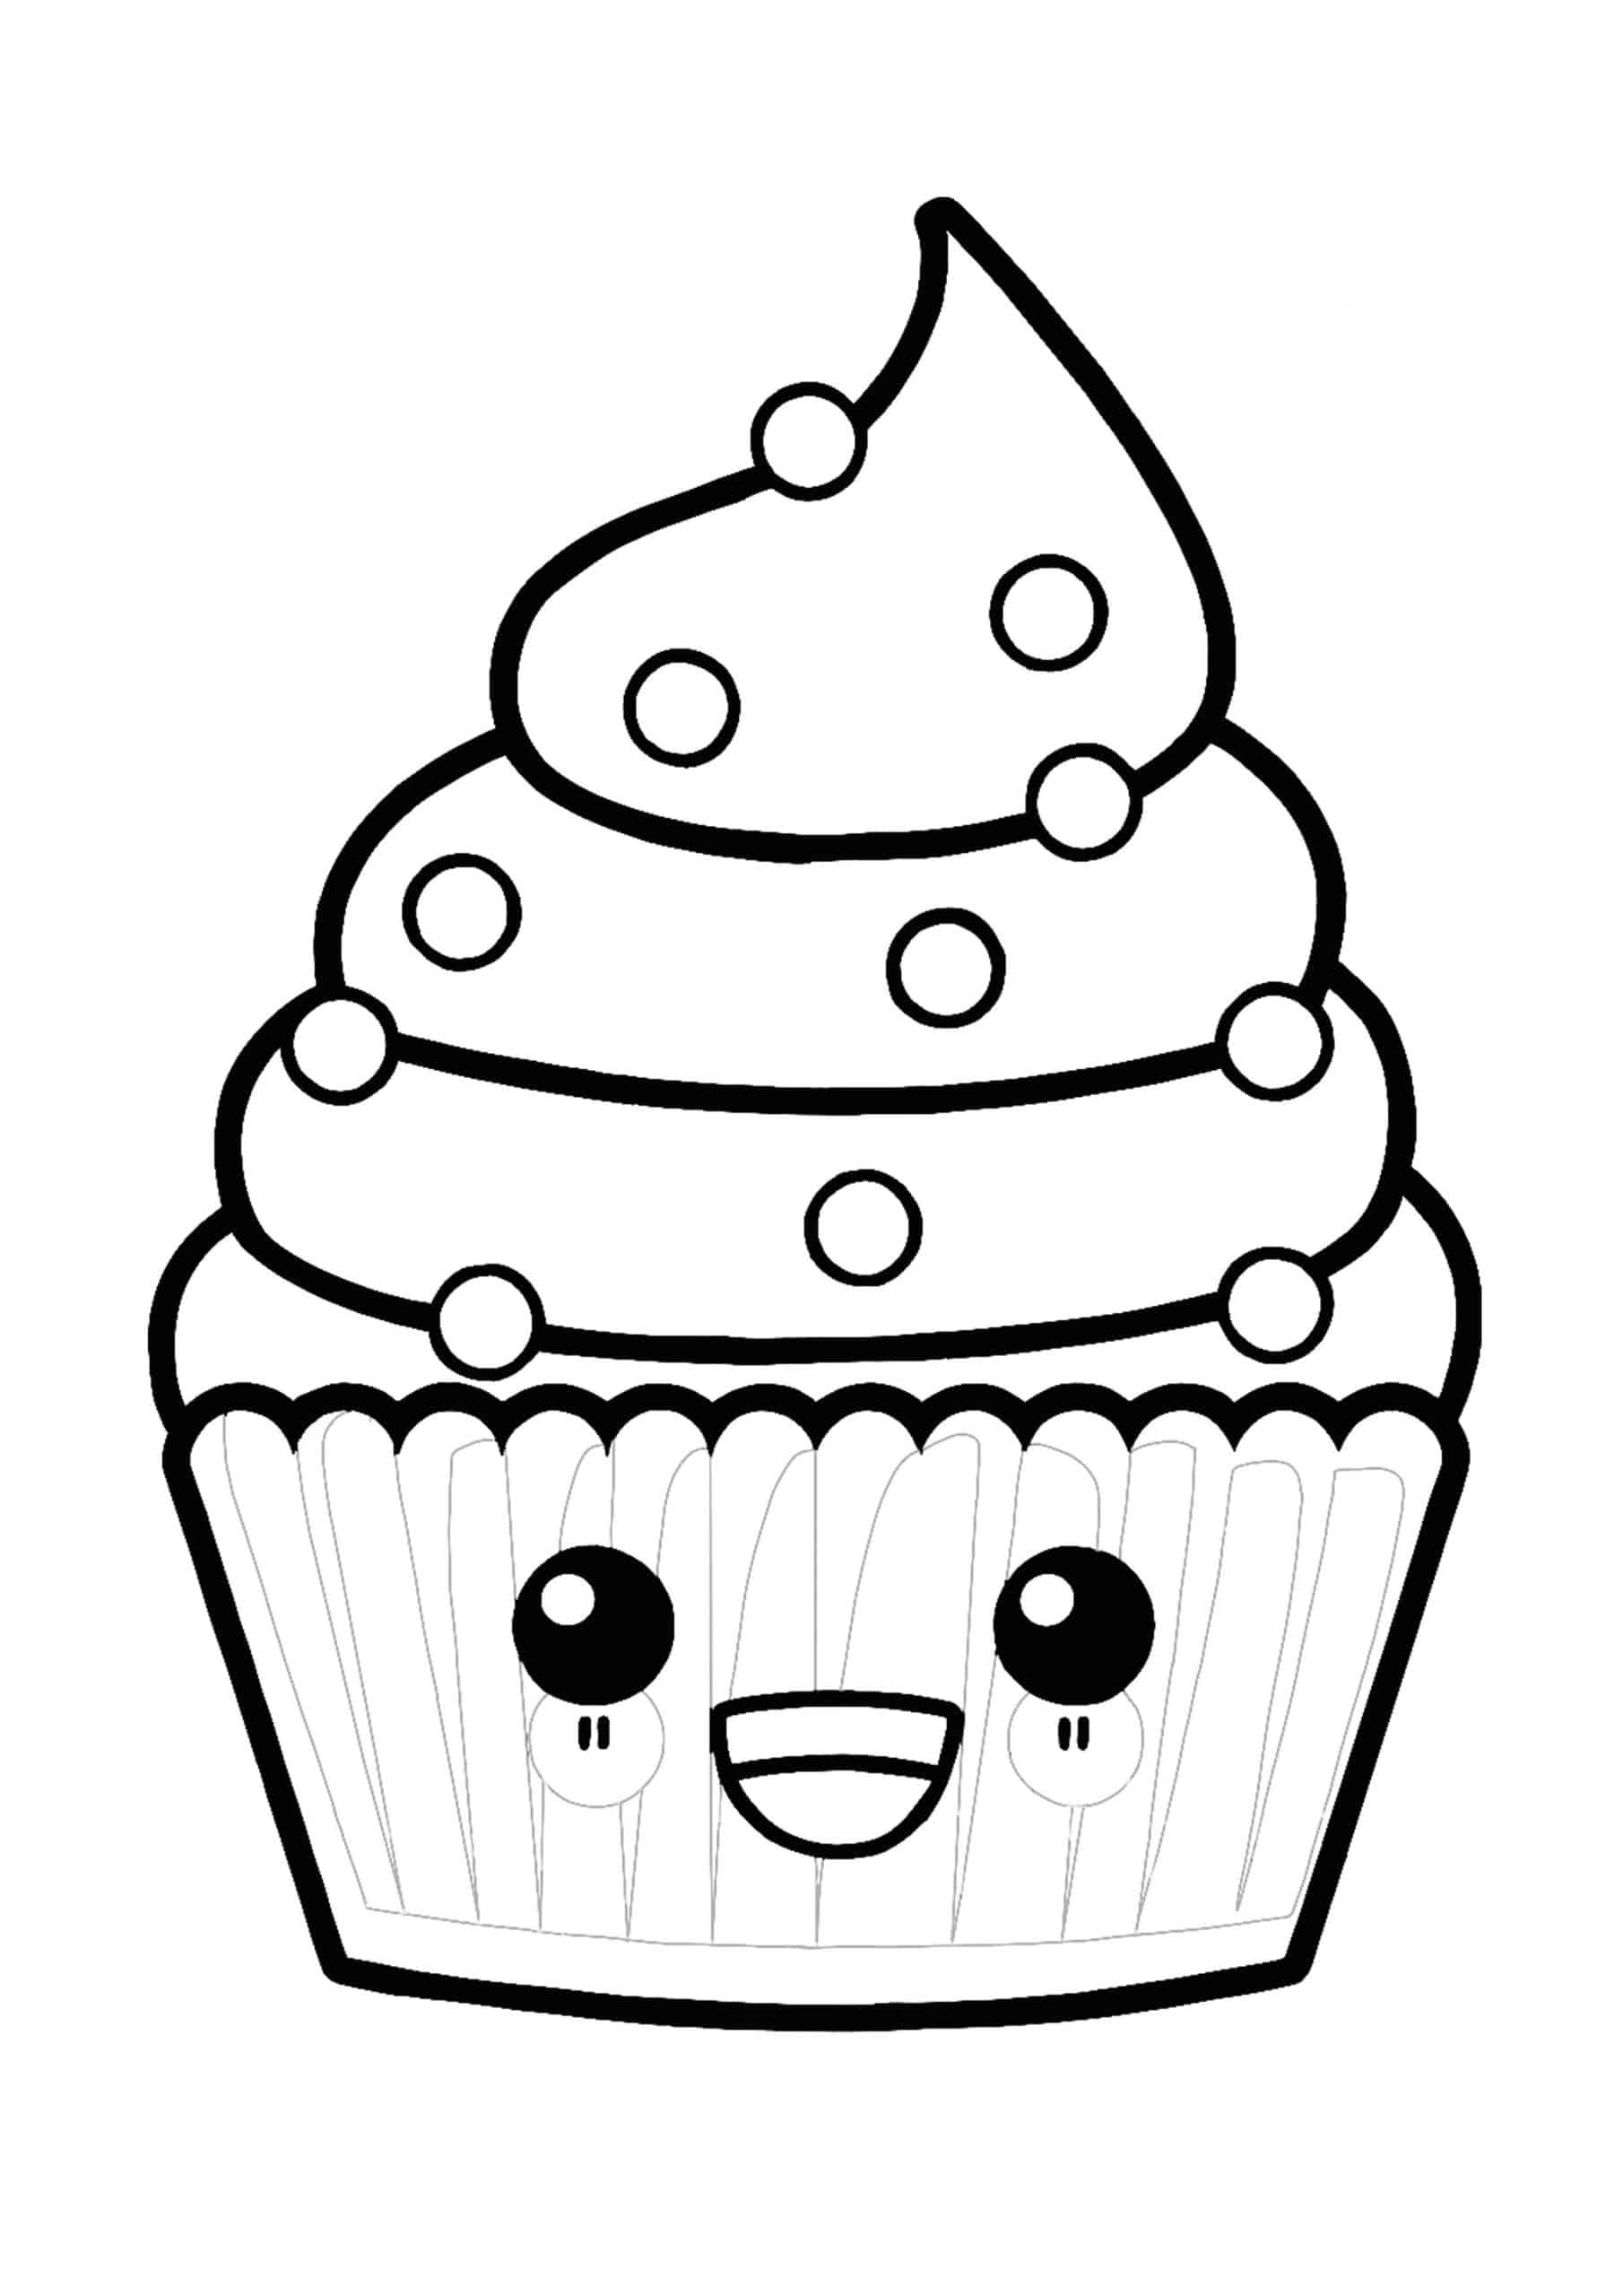 Coloriage Gateau Kawaii